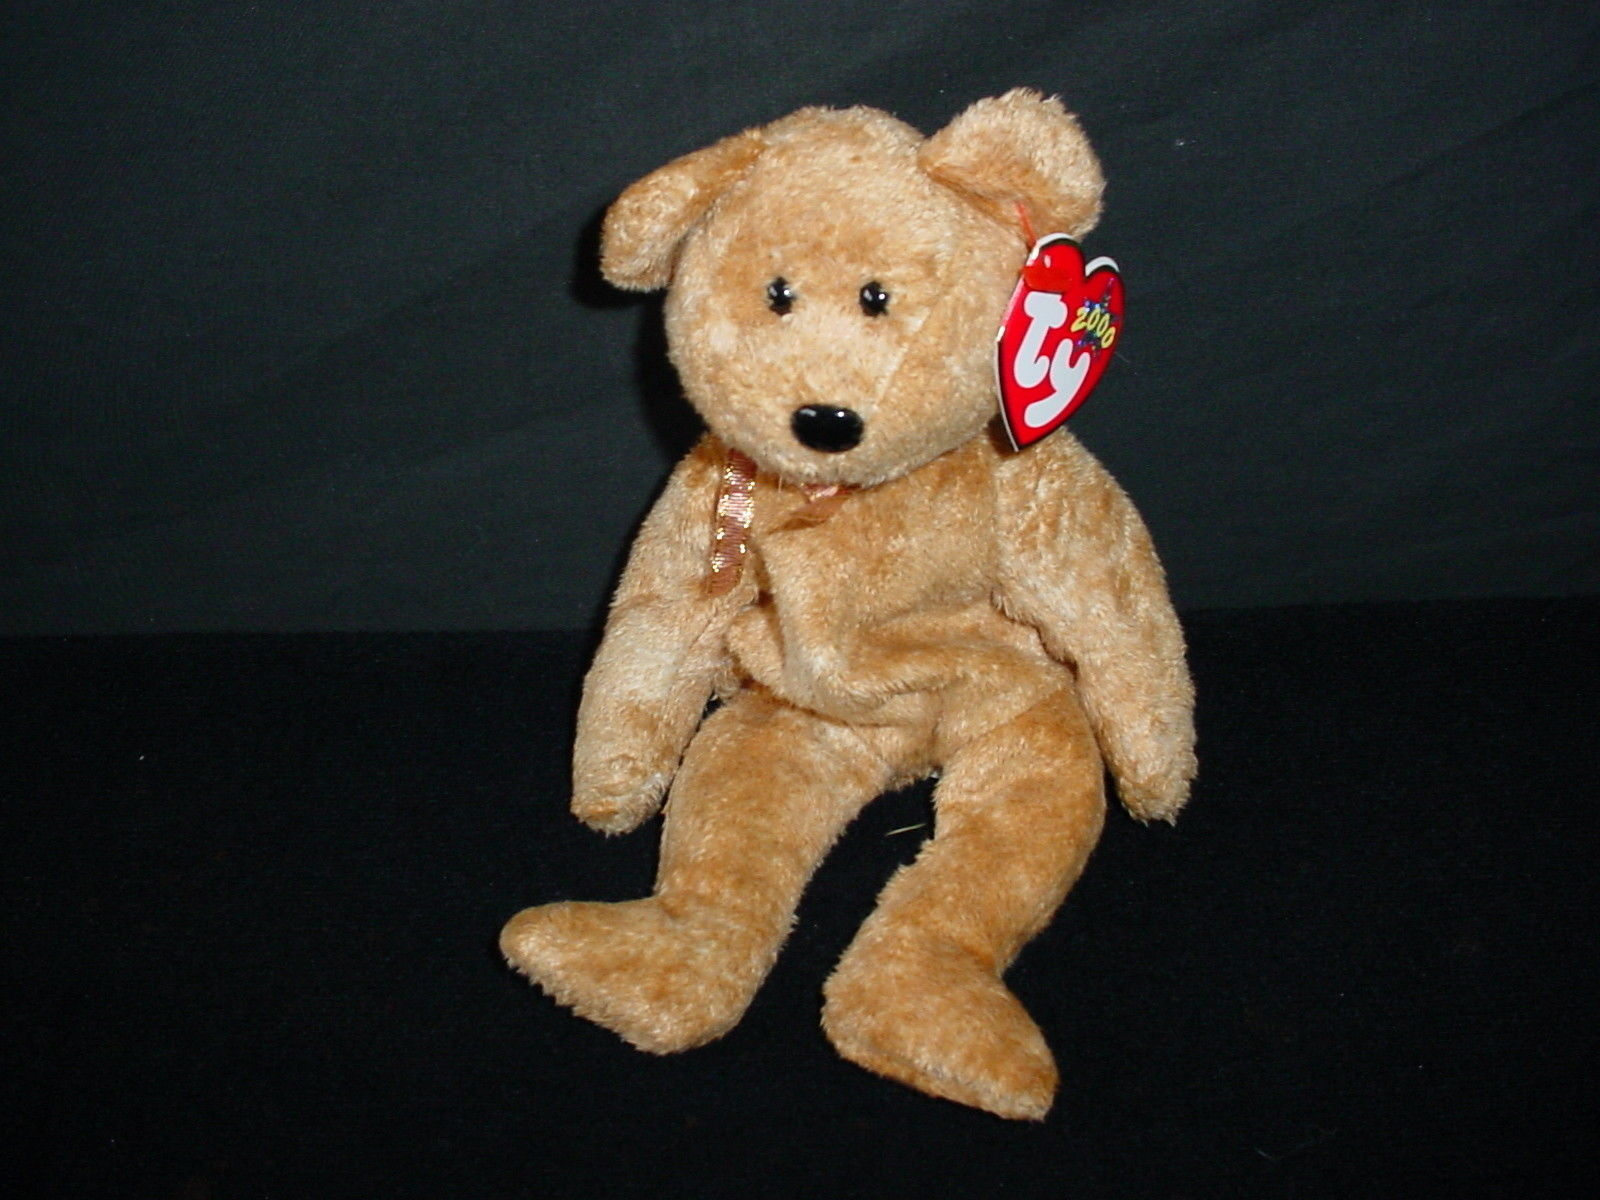 cad71762097 Ty Beanie Babies Cashew Bear Retired Plush and 50 similar items. 57